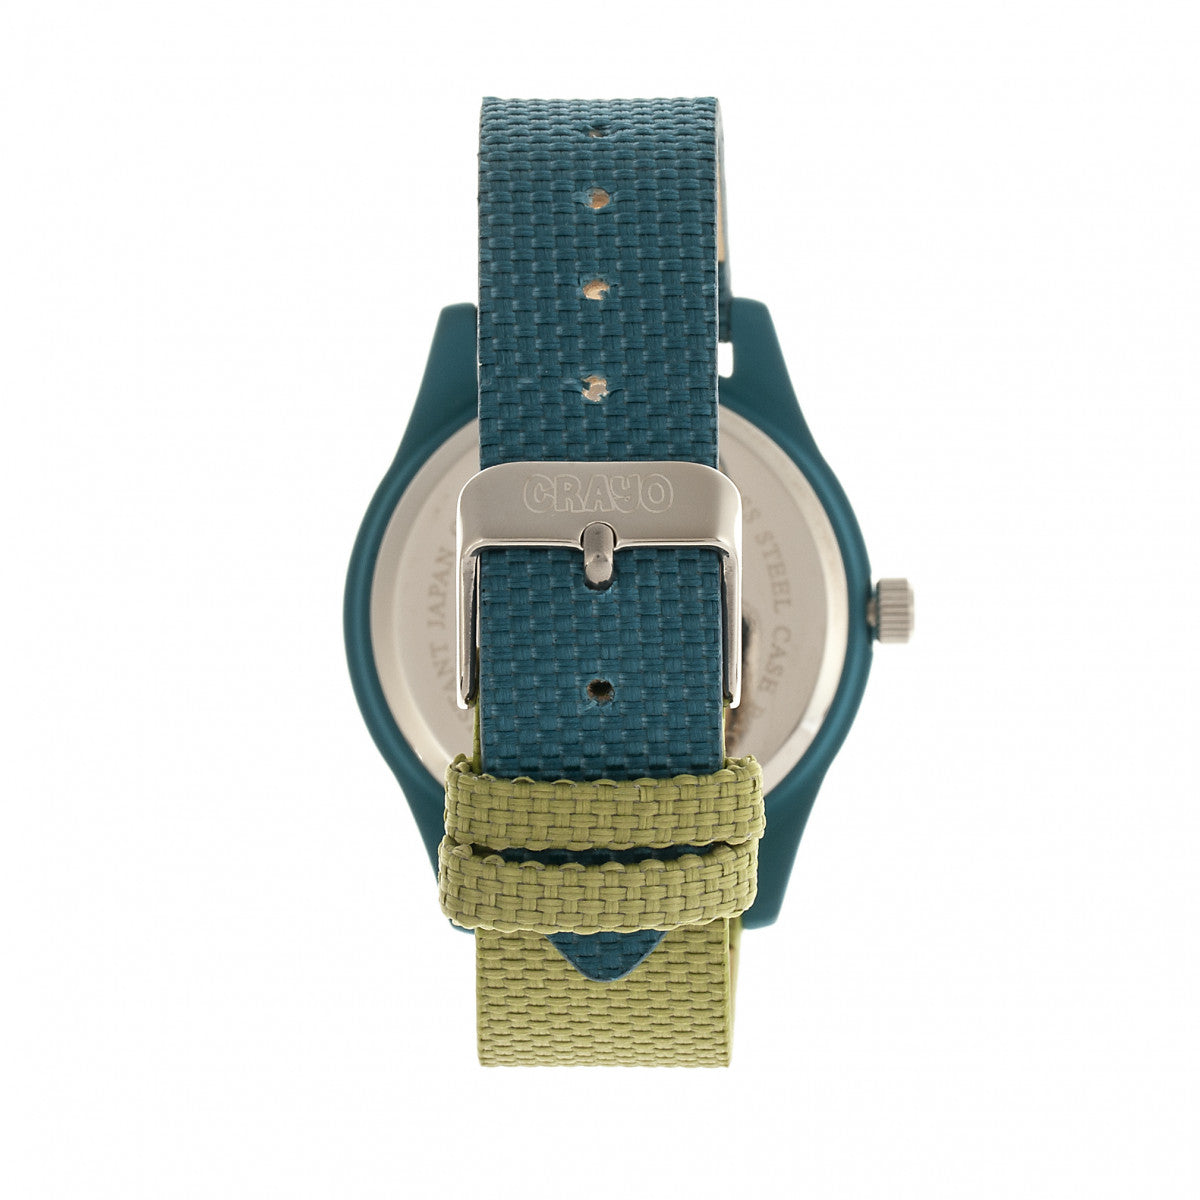 Crayo Pleasant Unisex Watch - Olive/Teal - CRACR3903